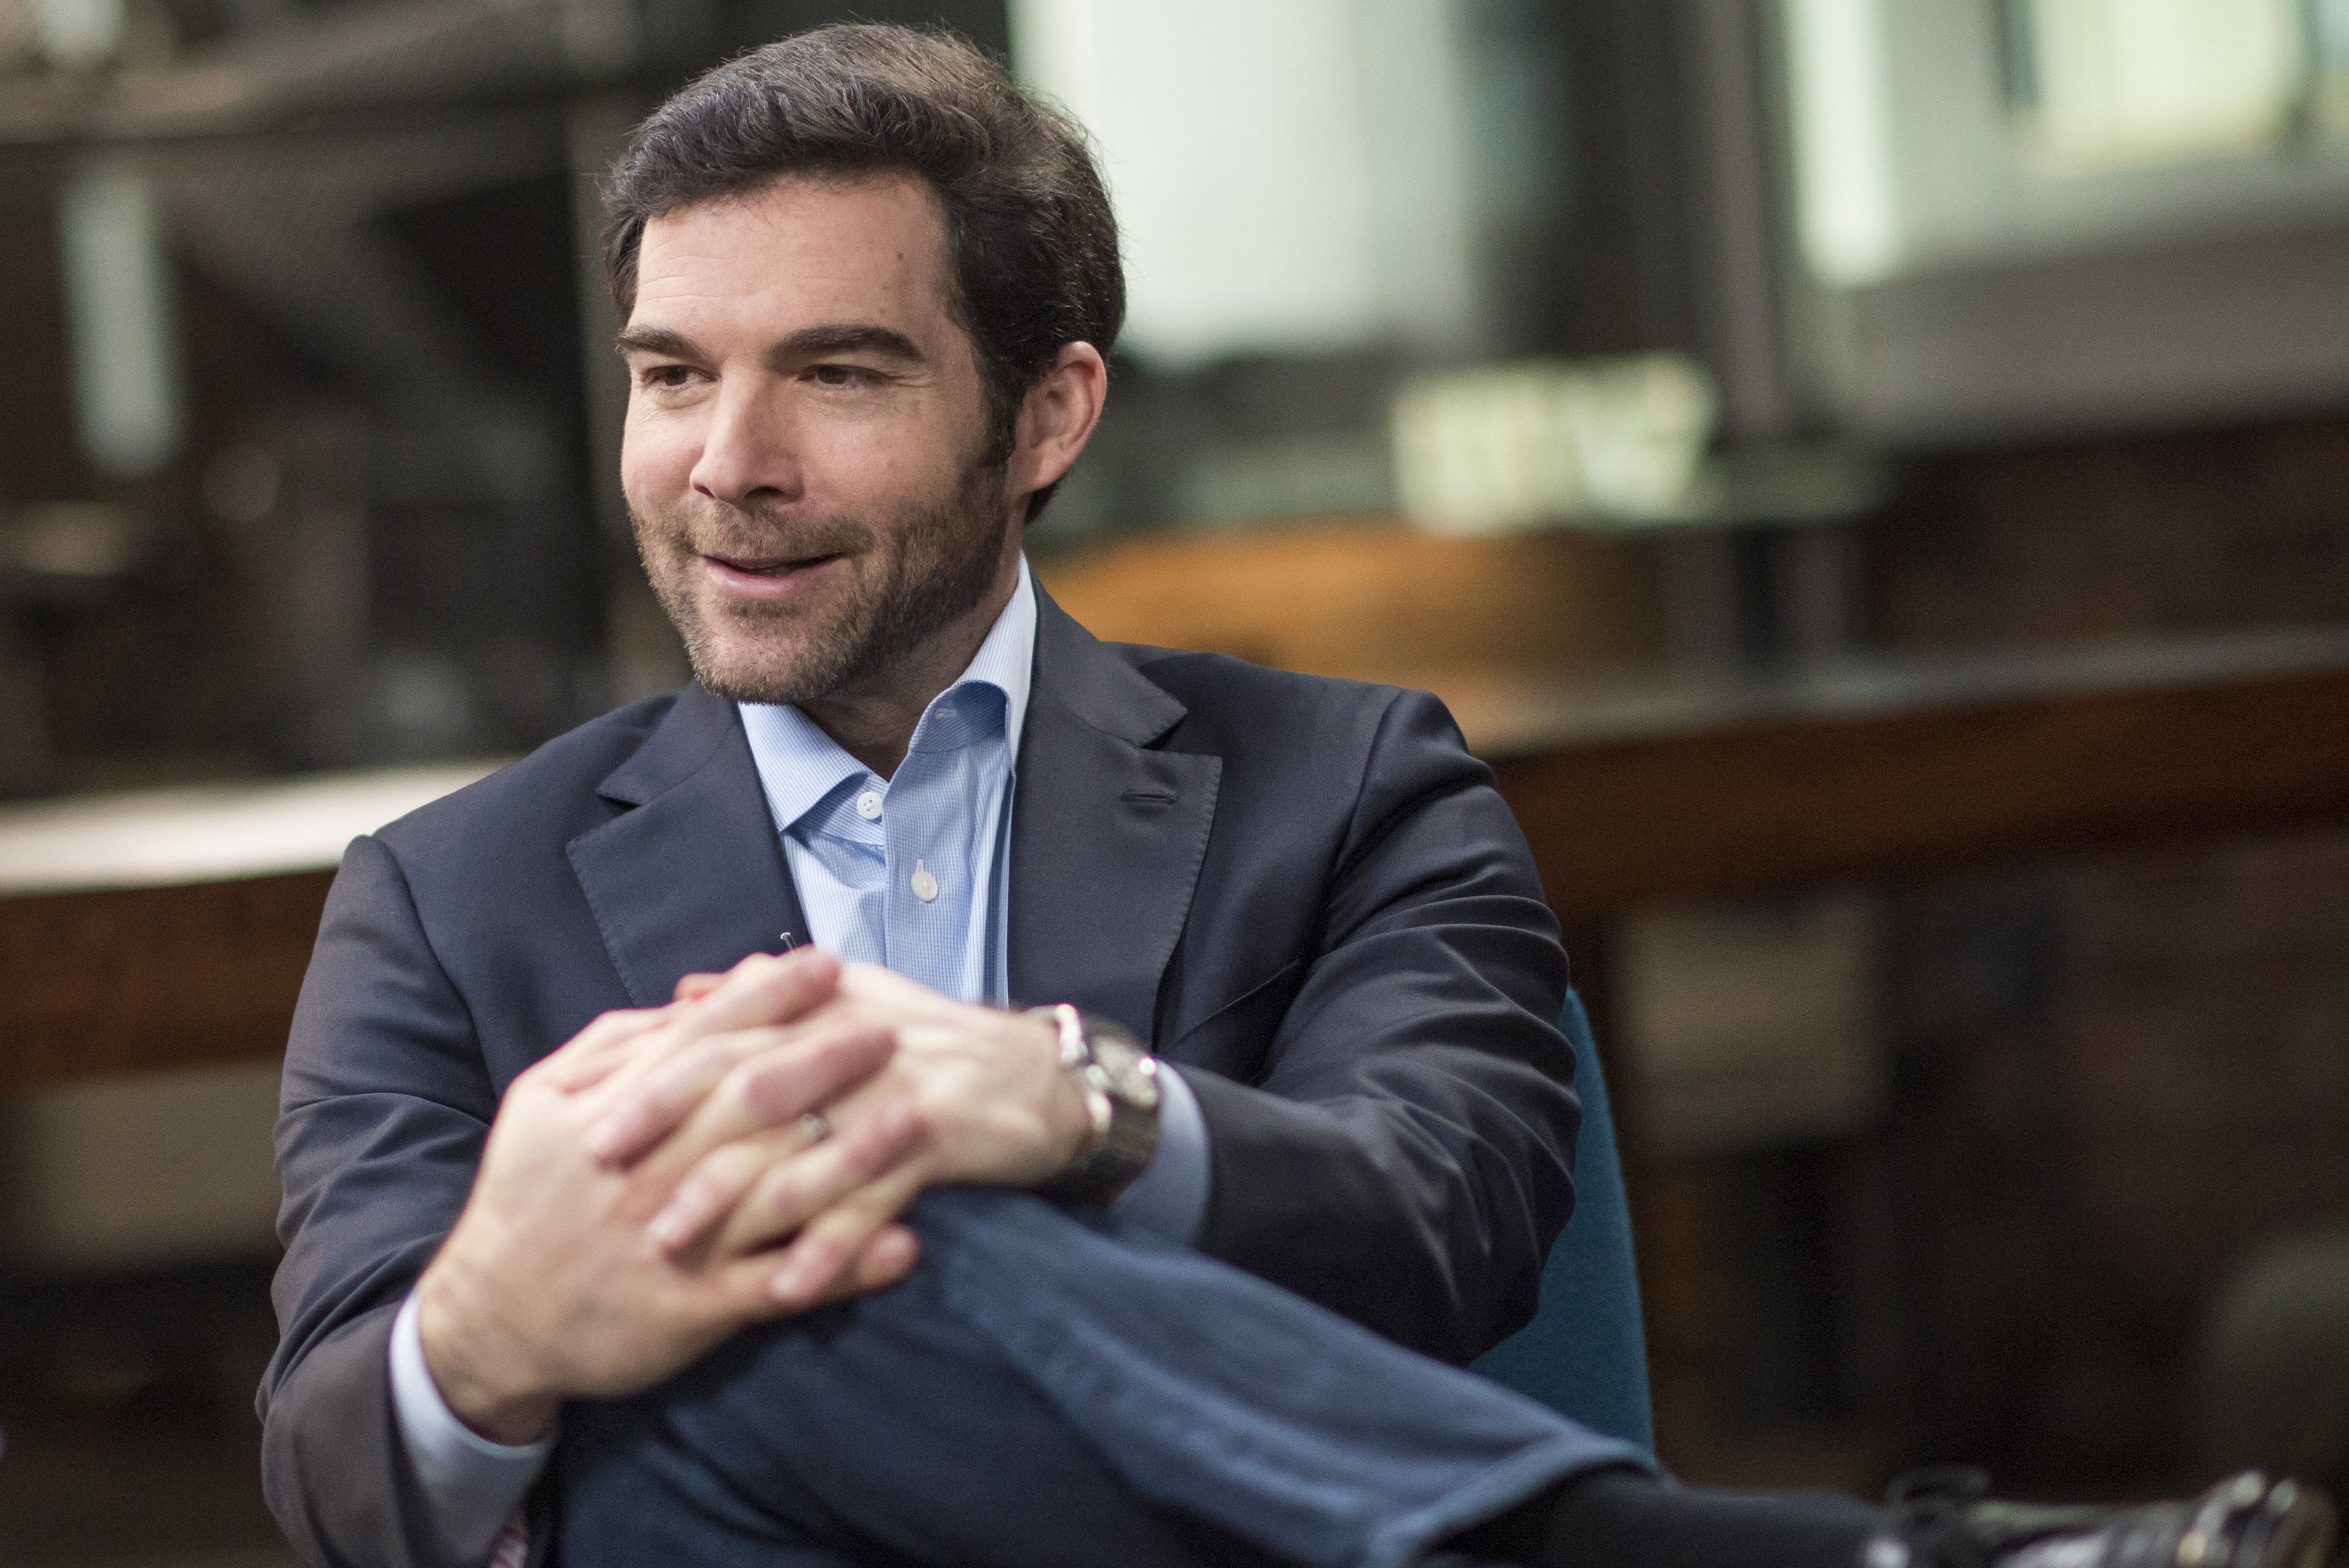 Jeff Weiner, chief executive officer of LinkedIn Corp., speaks during a Studio 1.0 interview in San Francisco, California, U.S., on Thursday, Feb. 25, 2016.